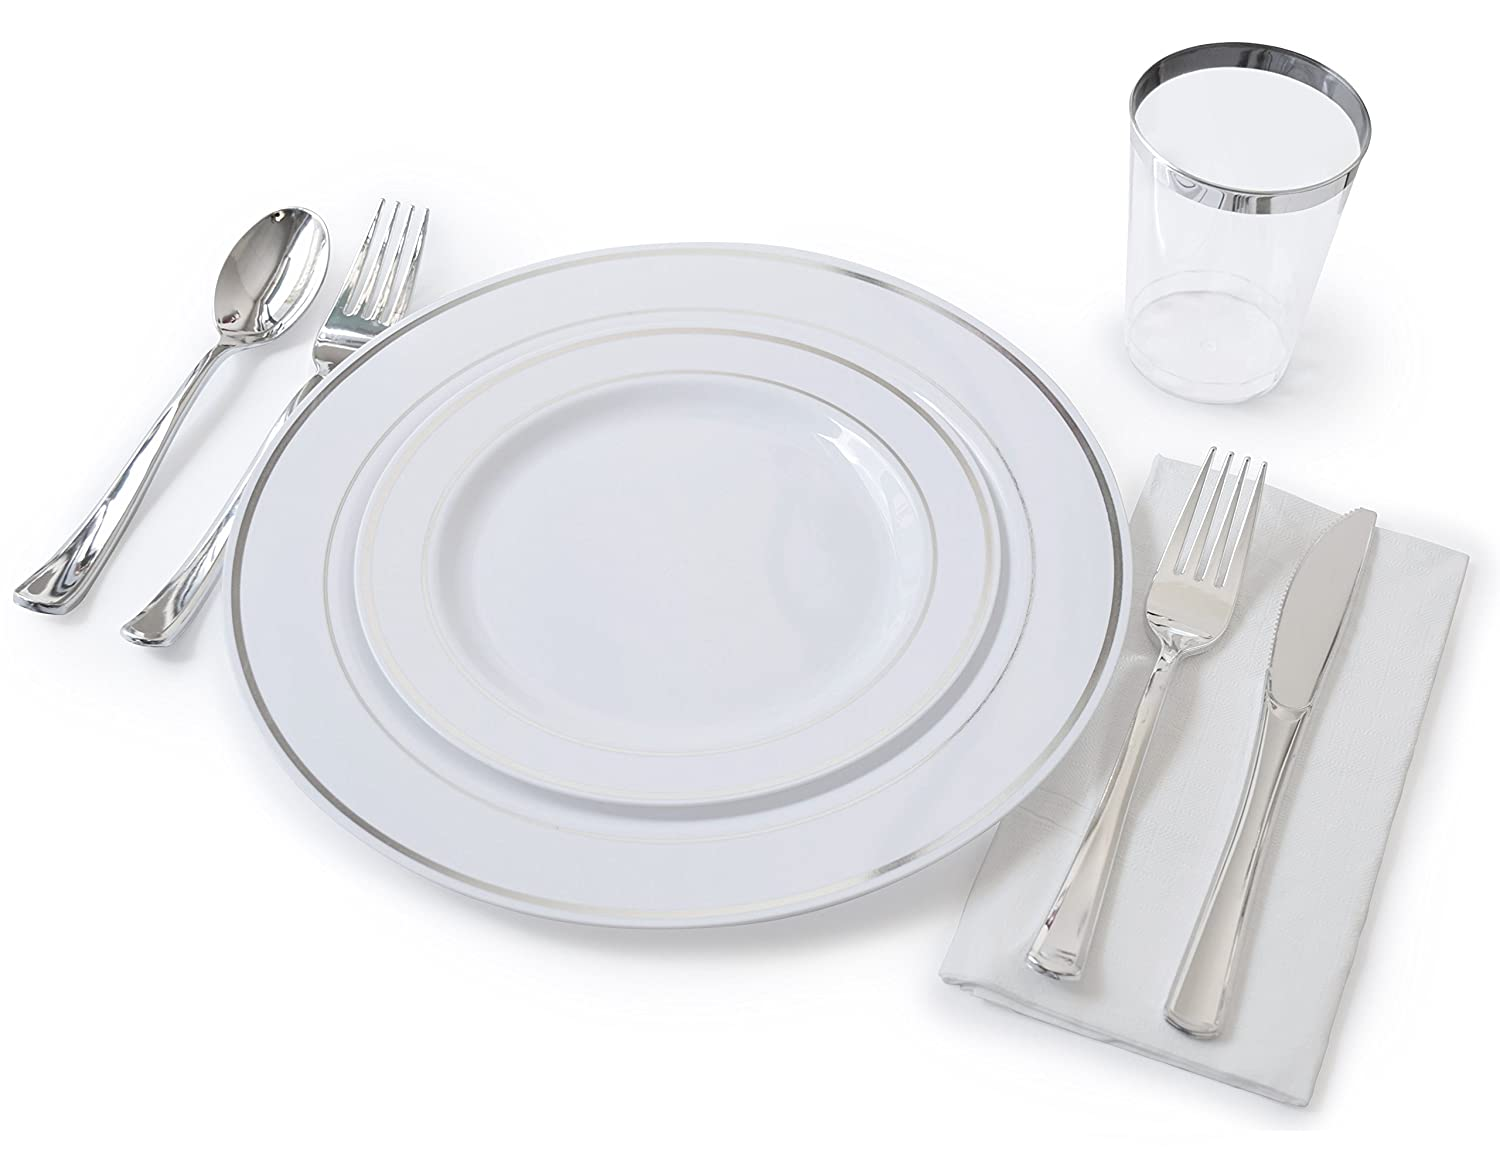 Amazon.com \ OCCASIONS\  Full Plastic Tableware set - Wedding Disposable Plastic Plates Plastic silverware Silver rimmed tumblers and 3 ply Paper Napkins ...  sc 1 st  Amazon.com & Amazon.com: \